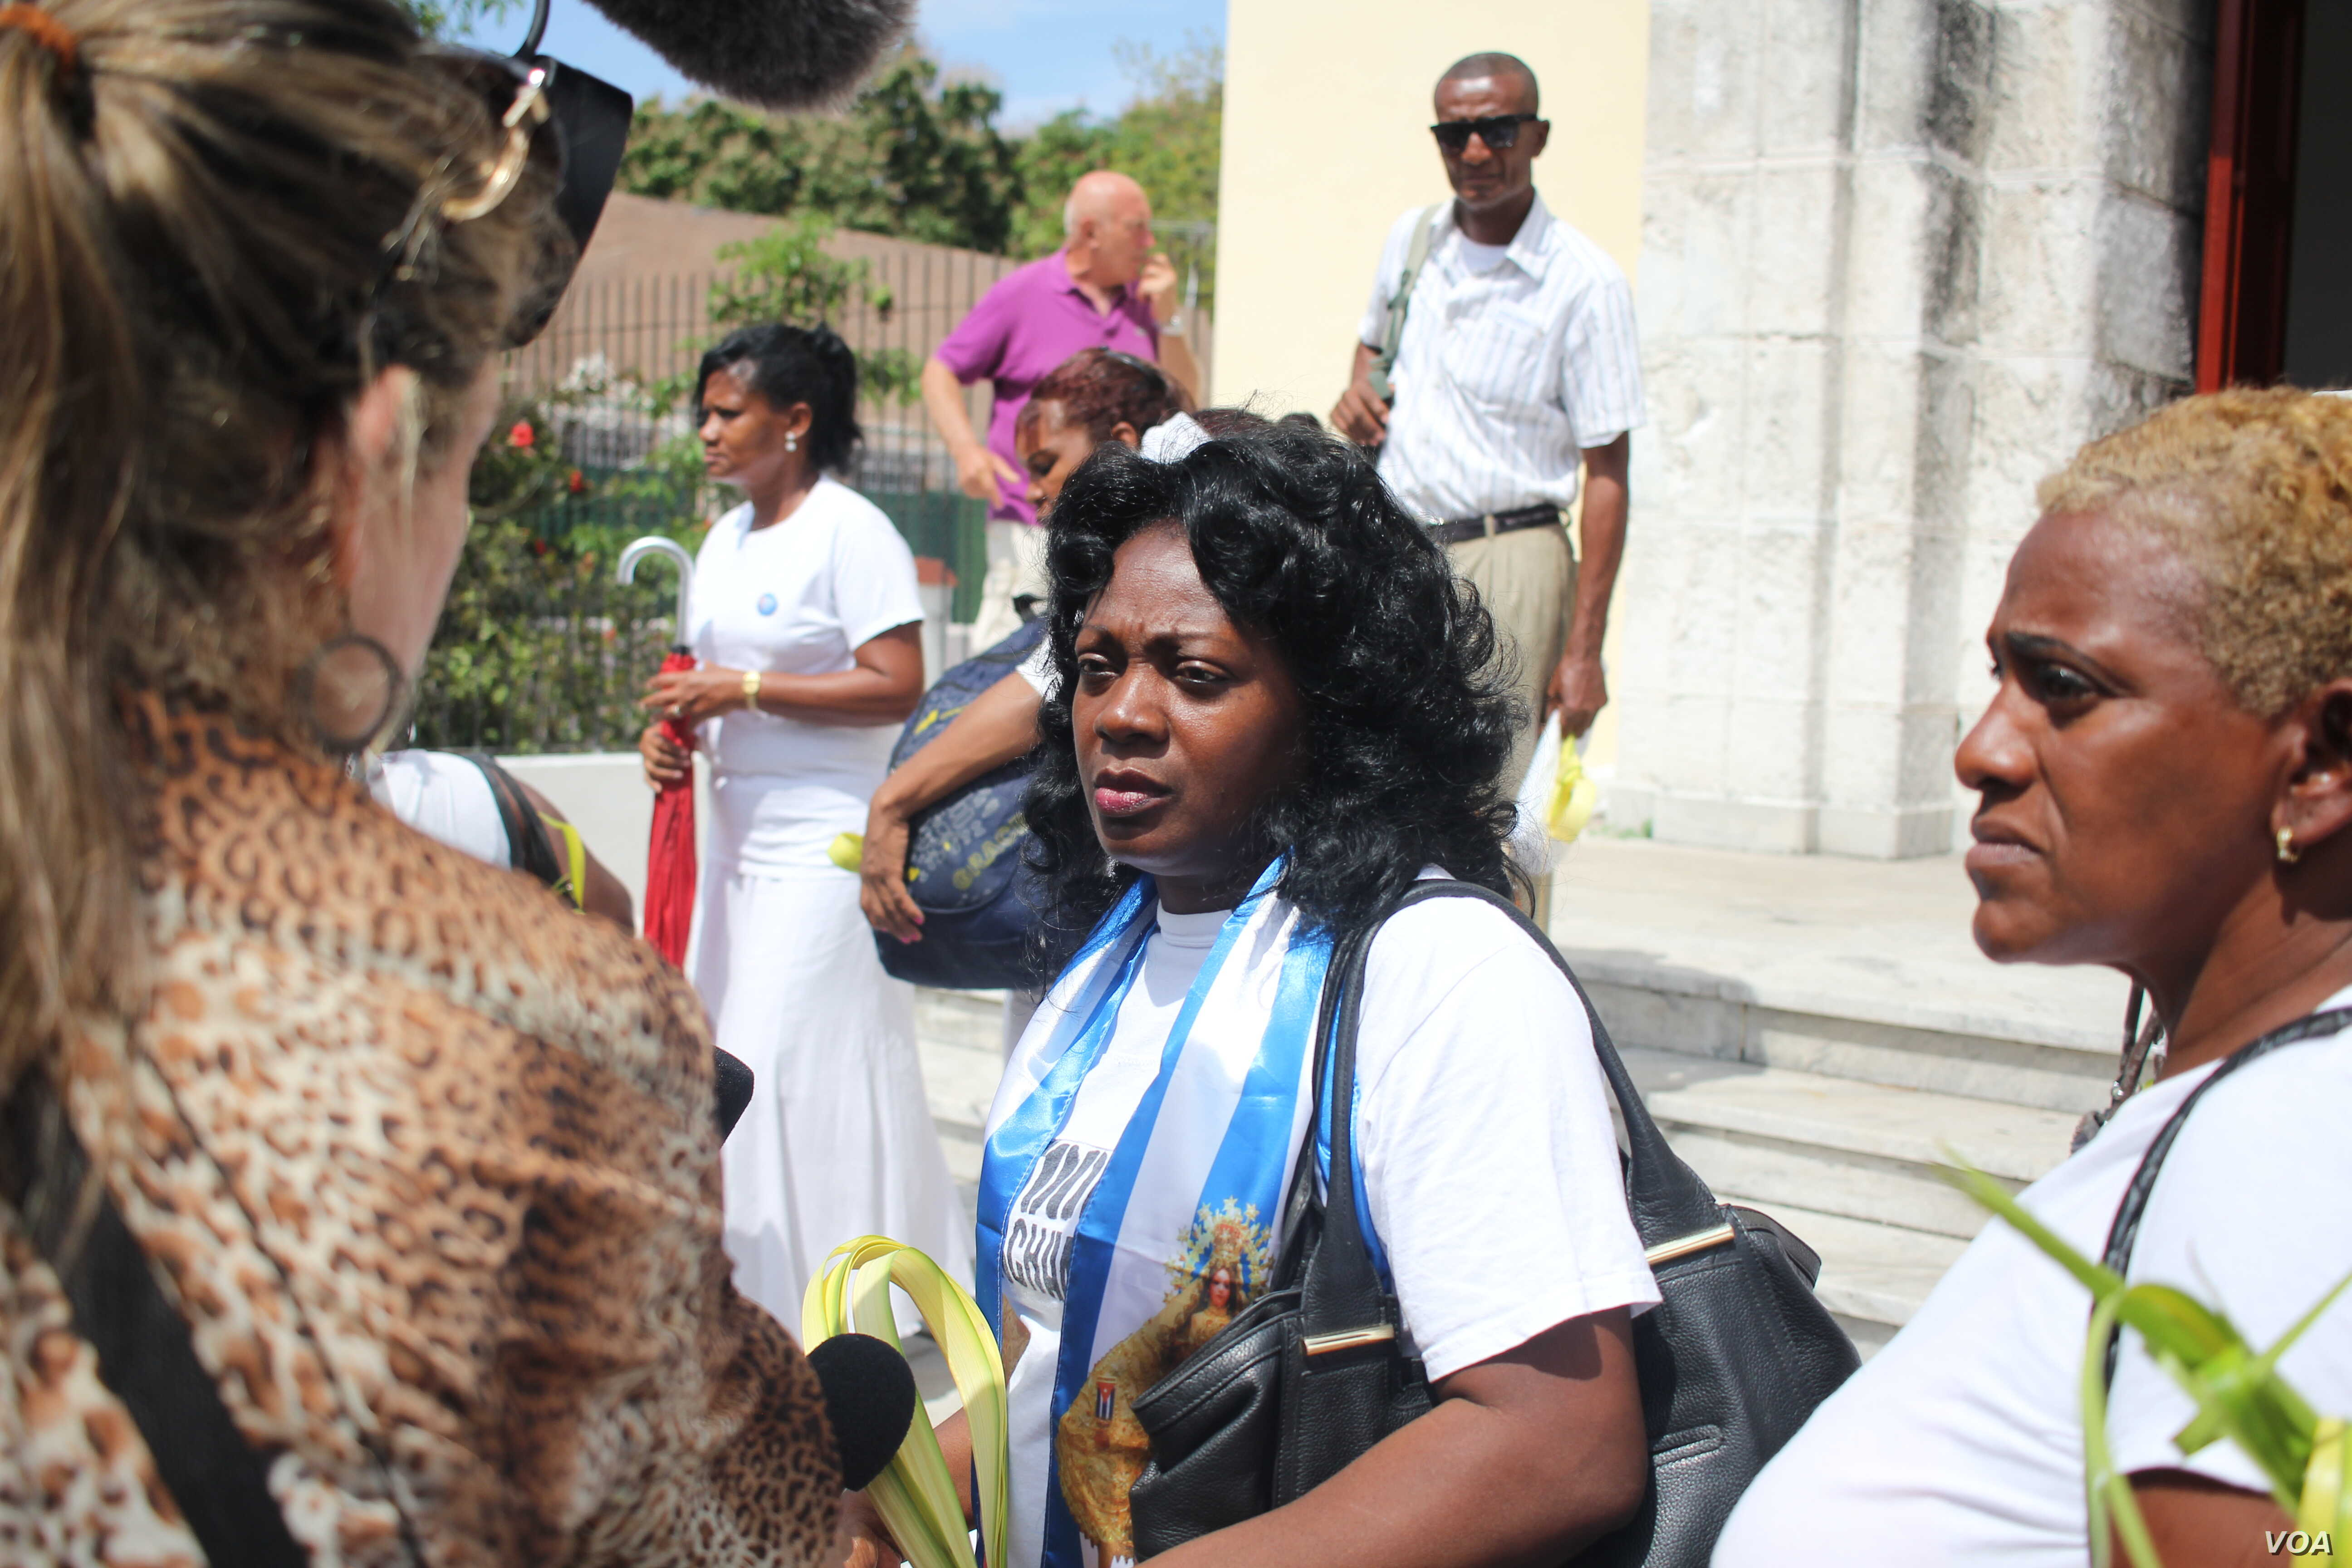 Berta Soler speaks with the media outside St. Rita's Church in Havana on March 20, 2016, hours before her arrest. (V. Macchi/VOA)